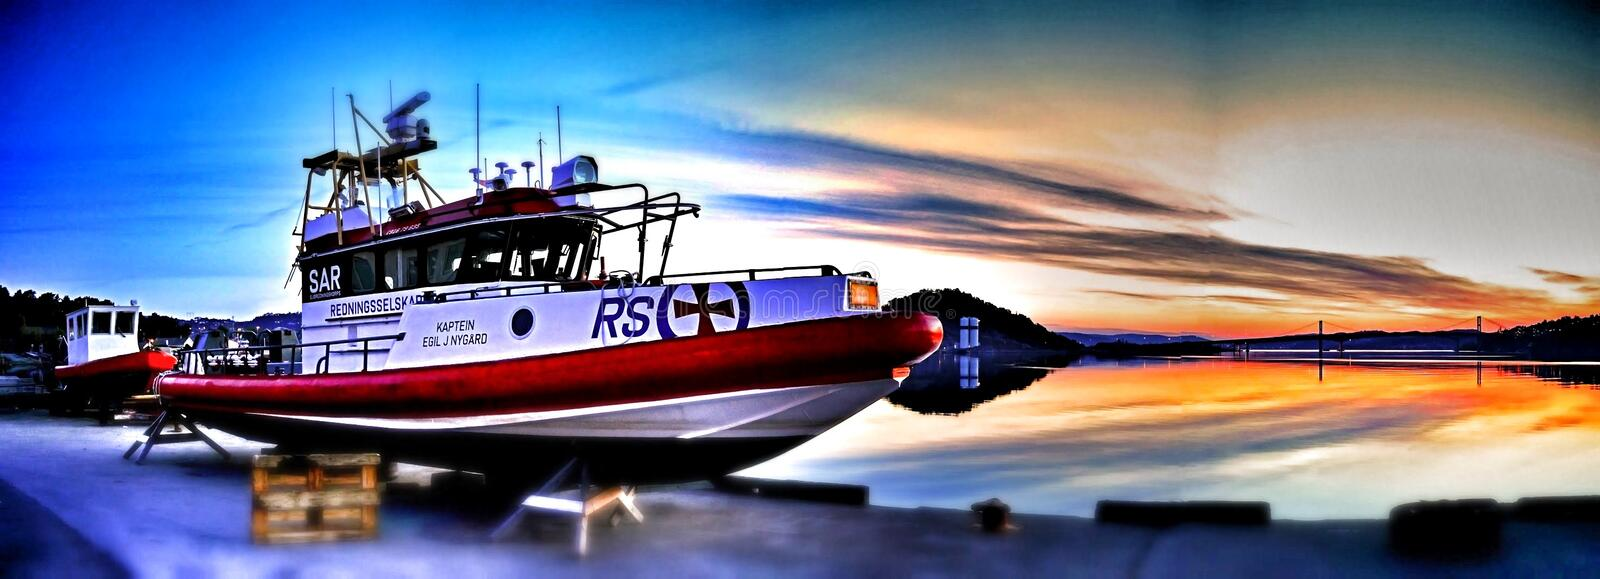 Rescue boat royalty free stock image